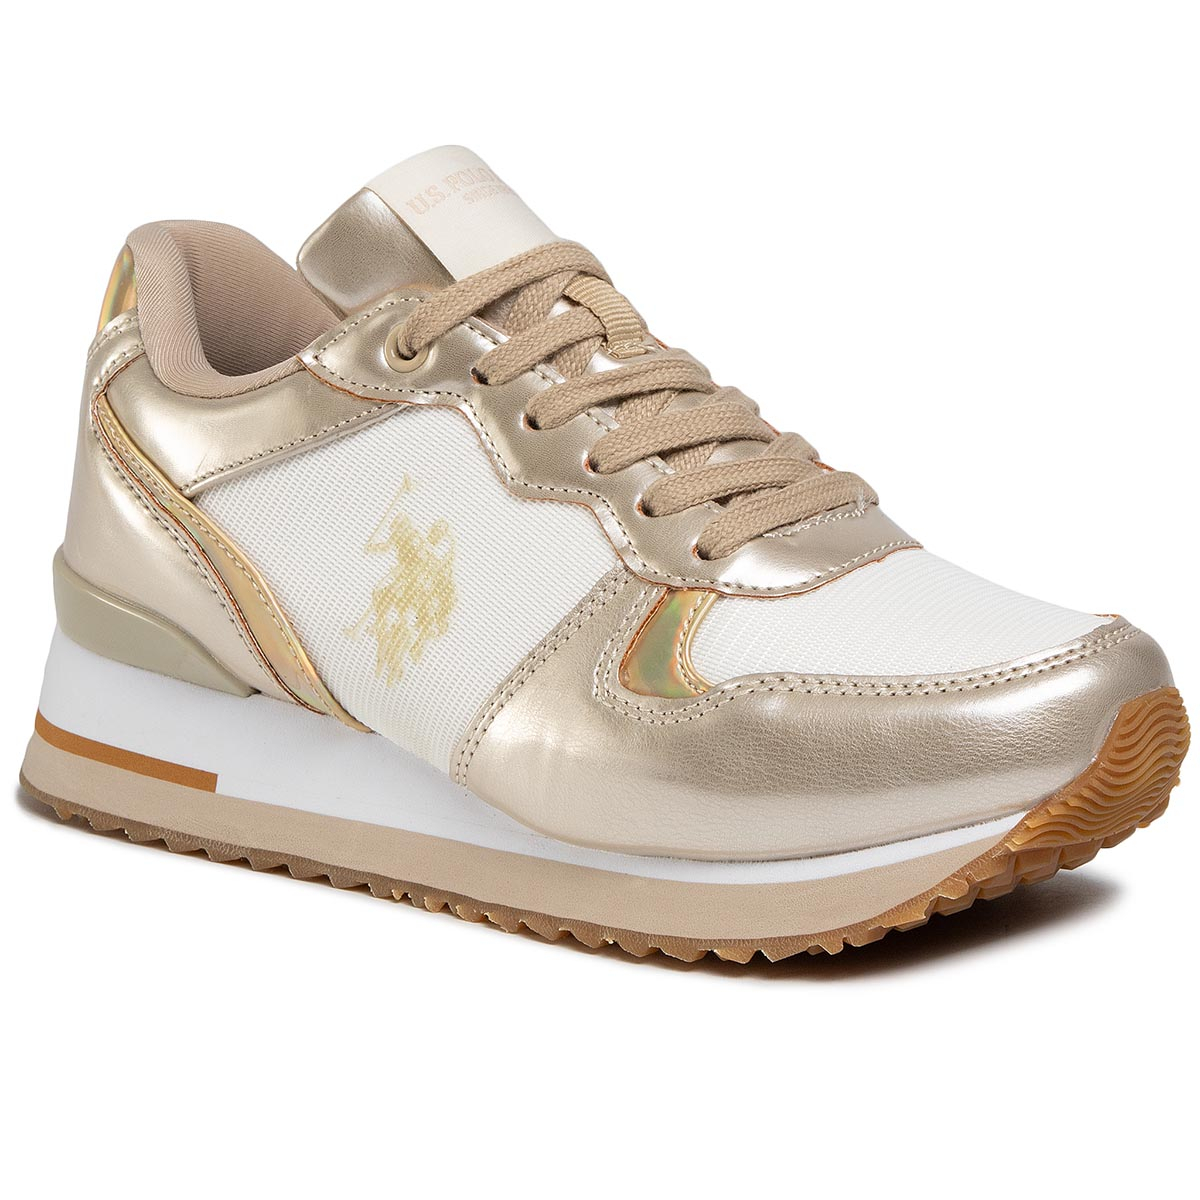 Sneakers U.S. POLO ASSN. - Tuzla2 FEY4228S8/YT4 Off Gold